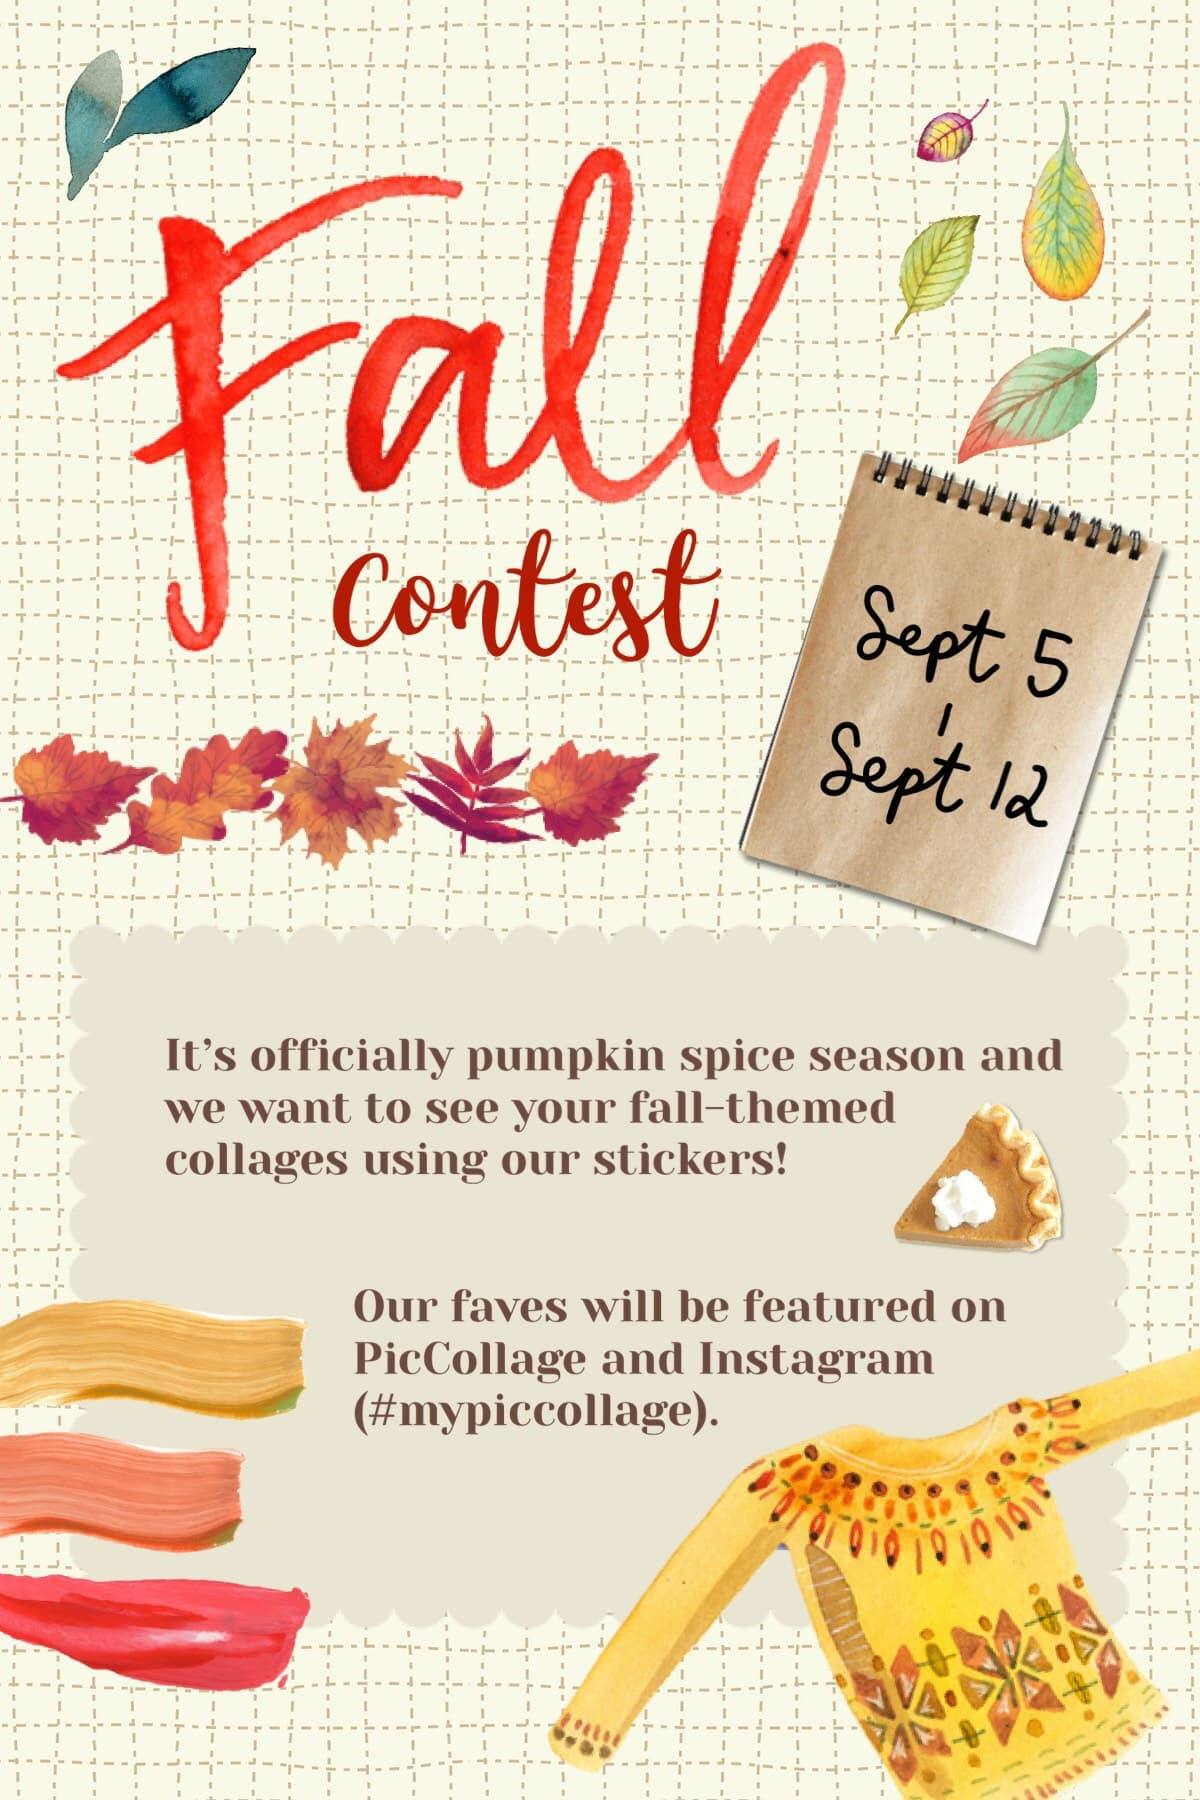 🍁 Fall contest is here! Deadline is Sept 12!